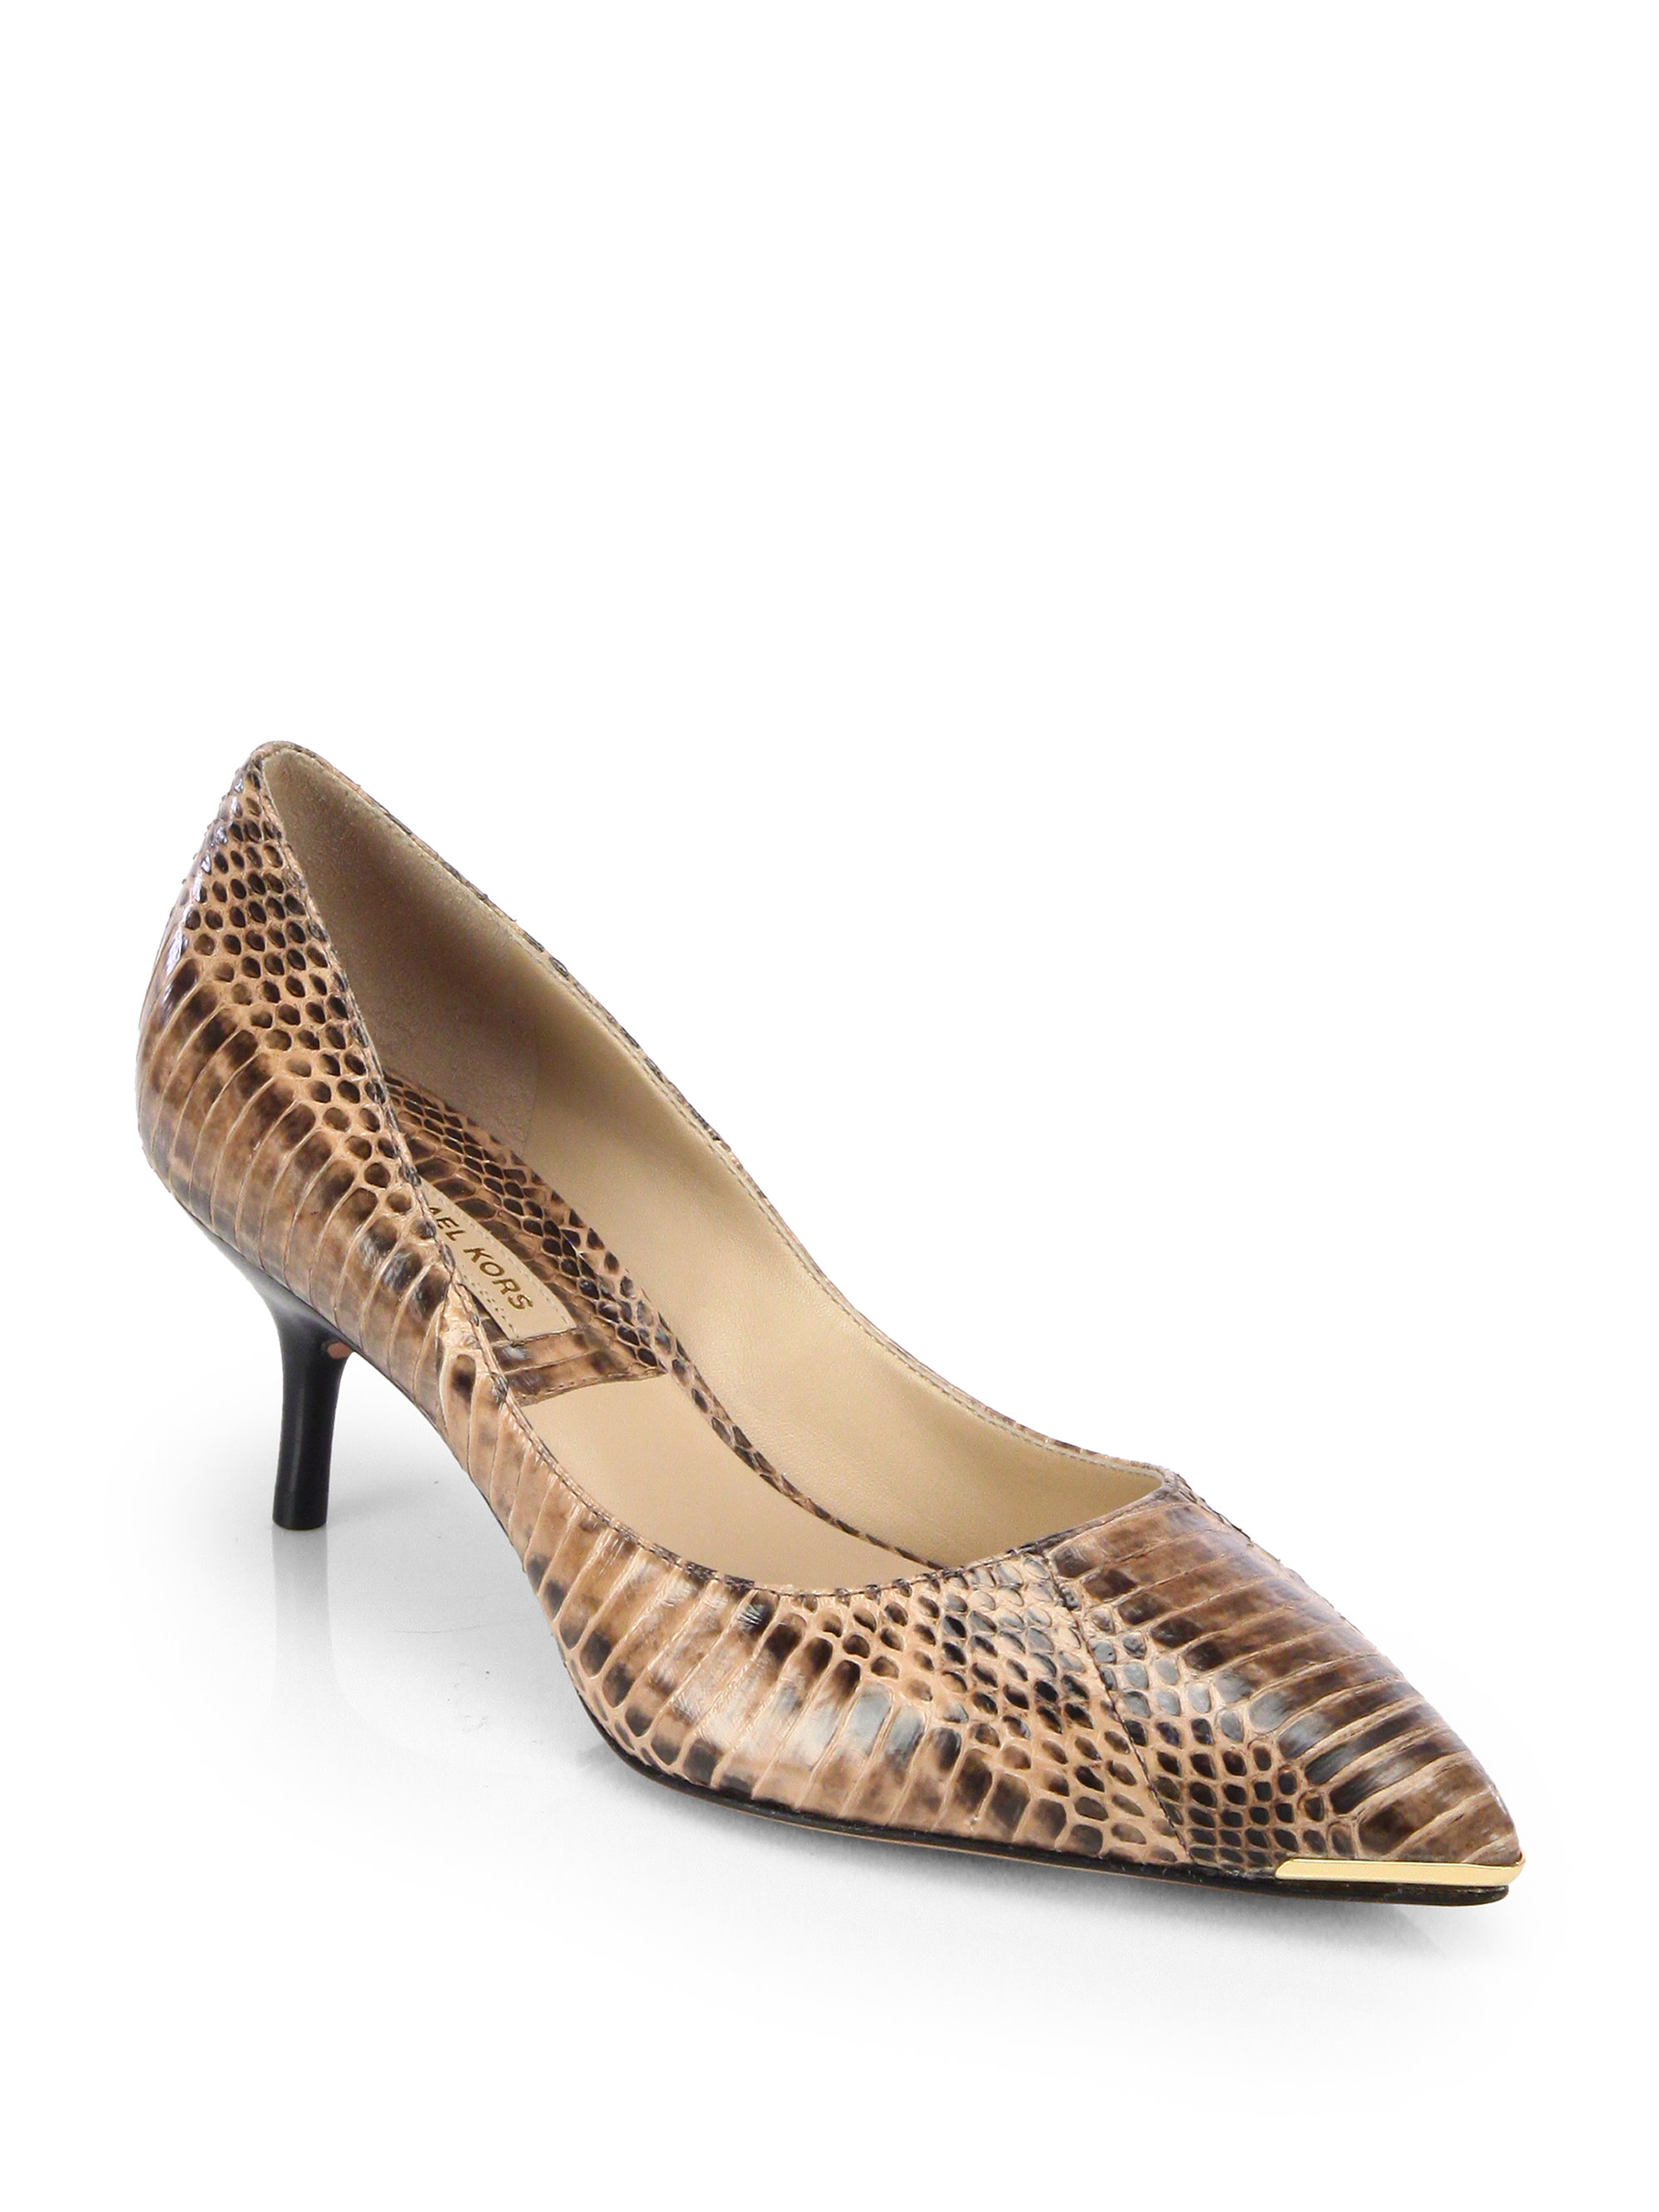 Brown Snakeskin Shoes For Women